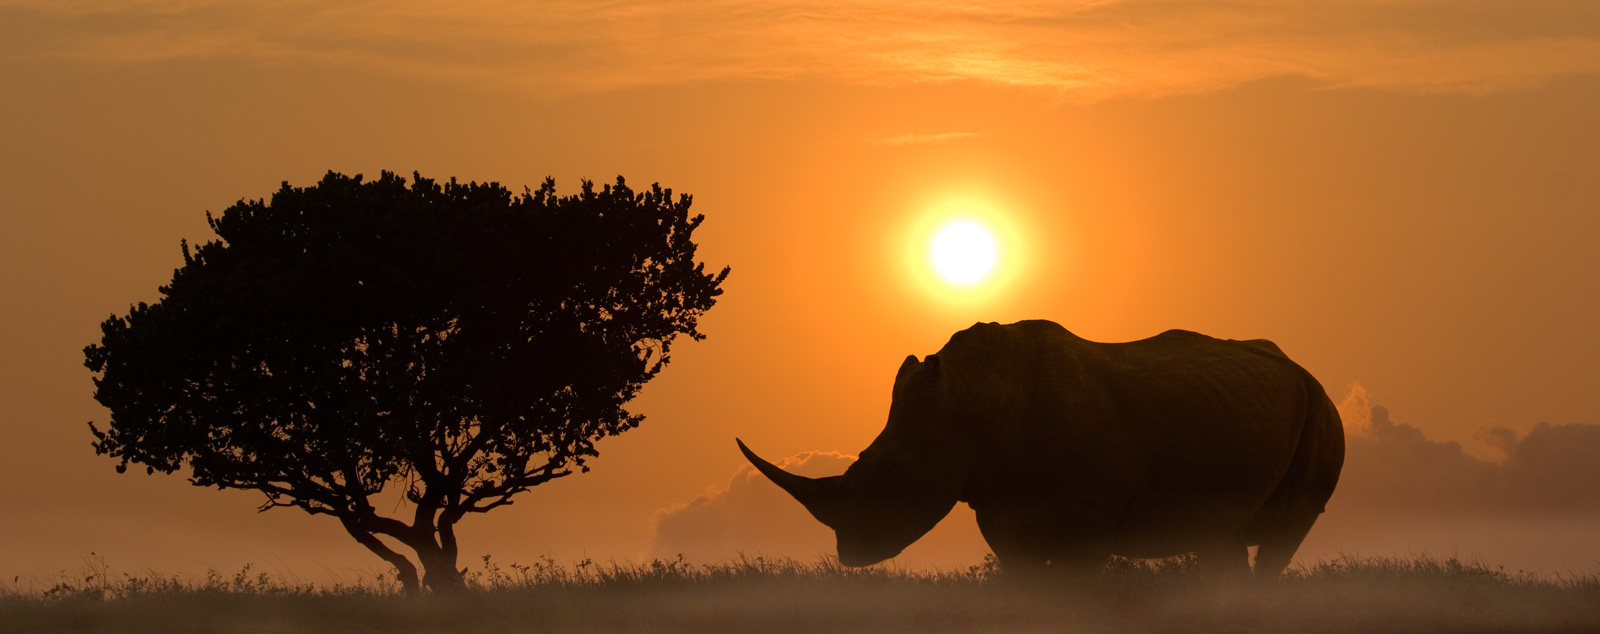 The shadowed silhouette of a rhino and typical savannah tree as the sun sets over the African bush